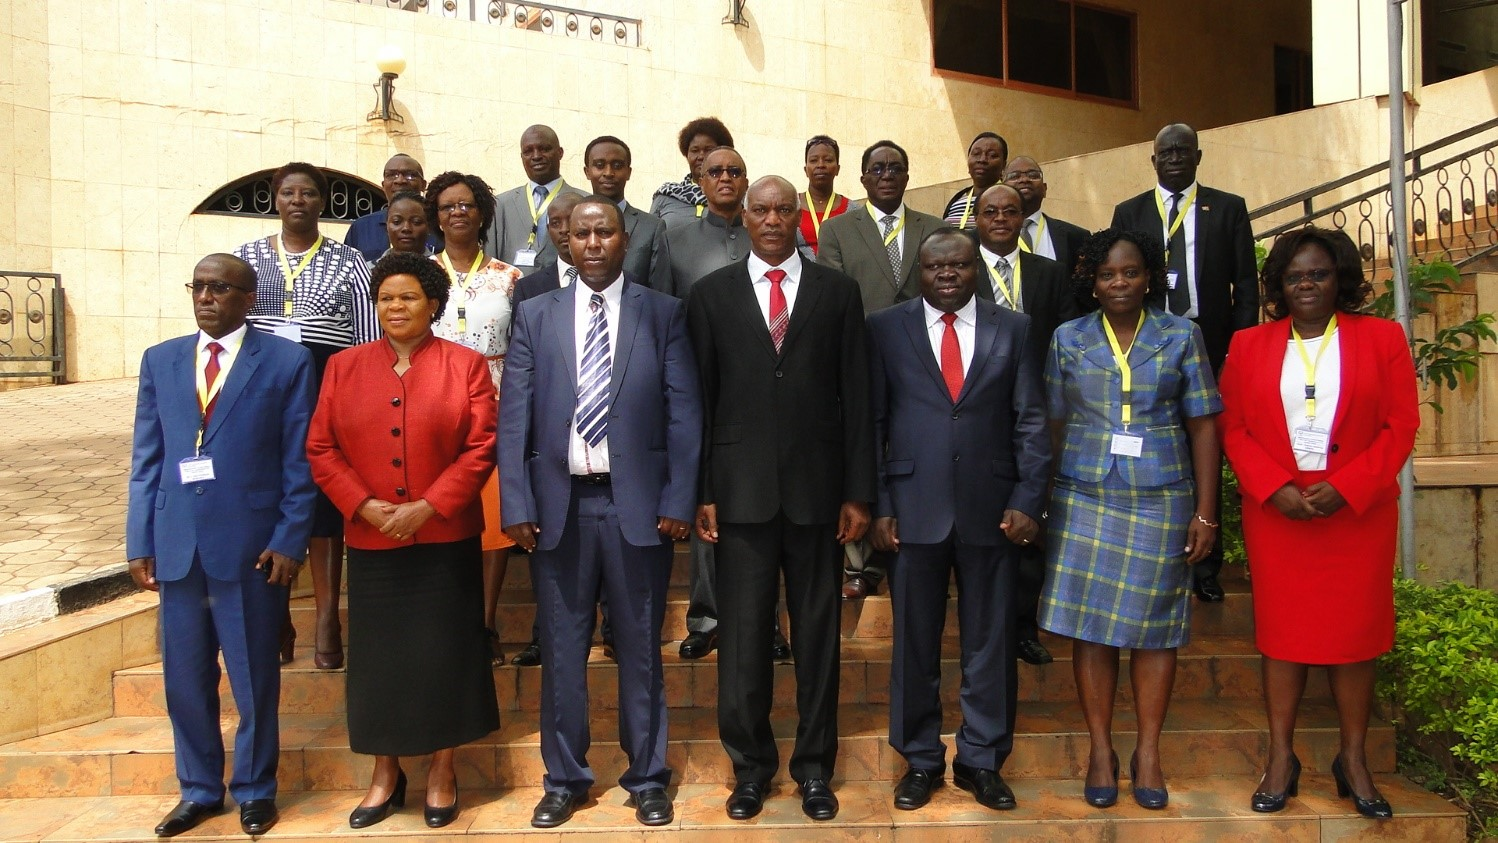 Members of one of the Meeting of IUCEA Executive Committee